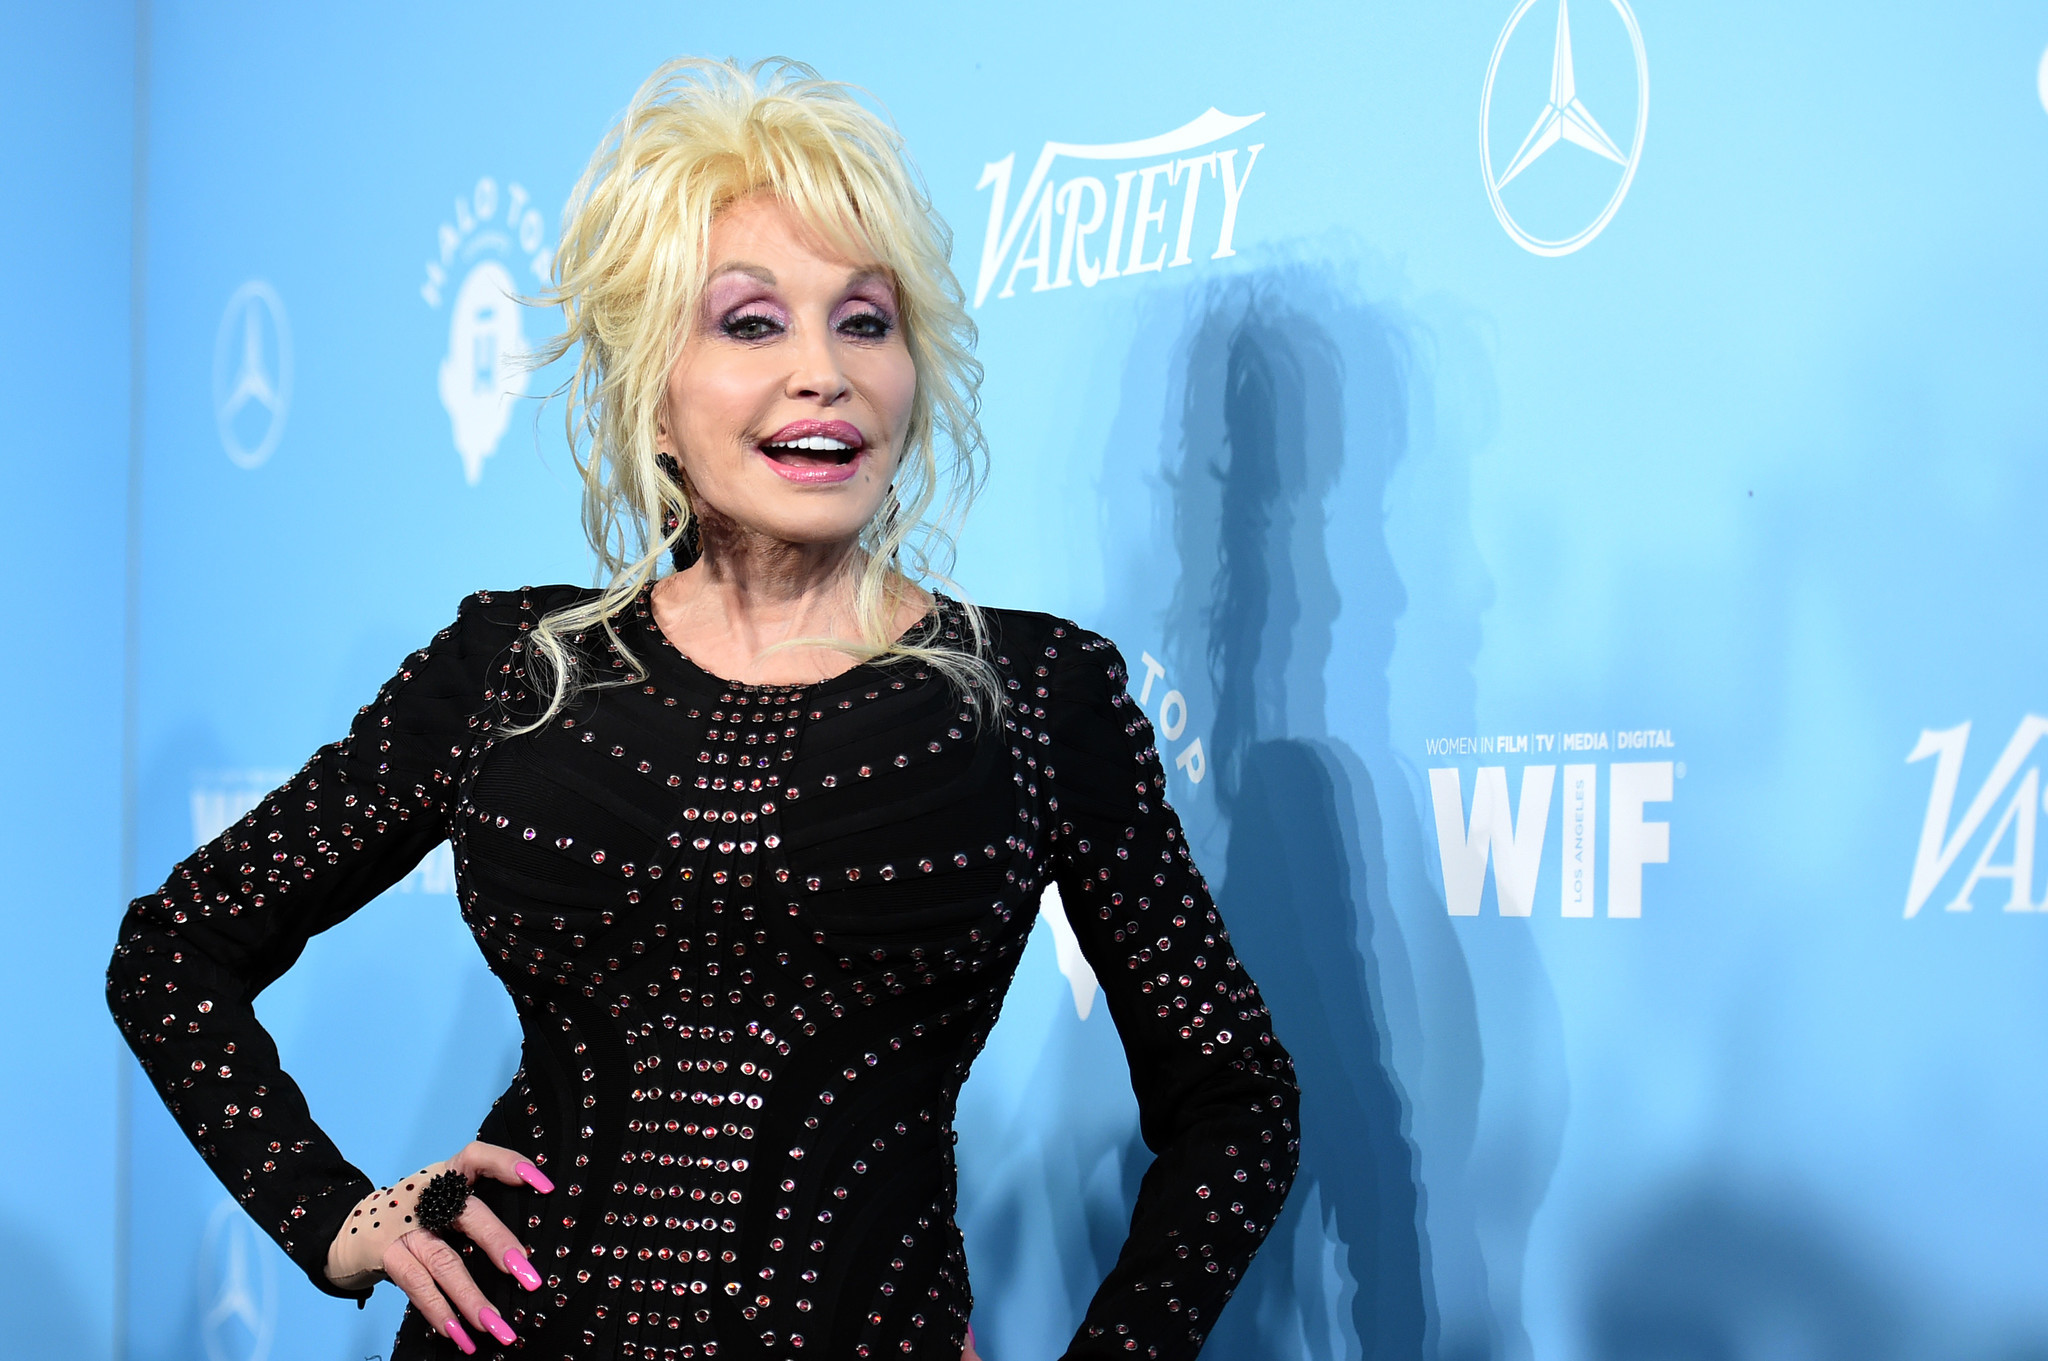 Dolly Parton attends the Variety and Women in Film event.